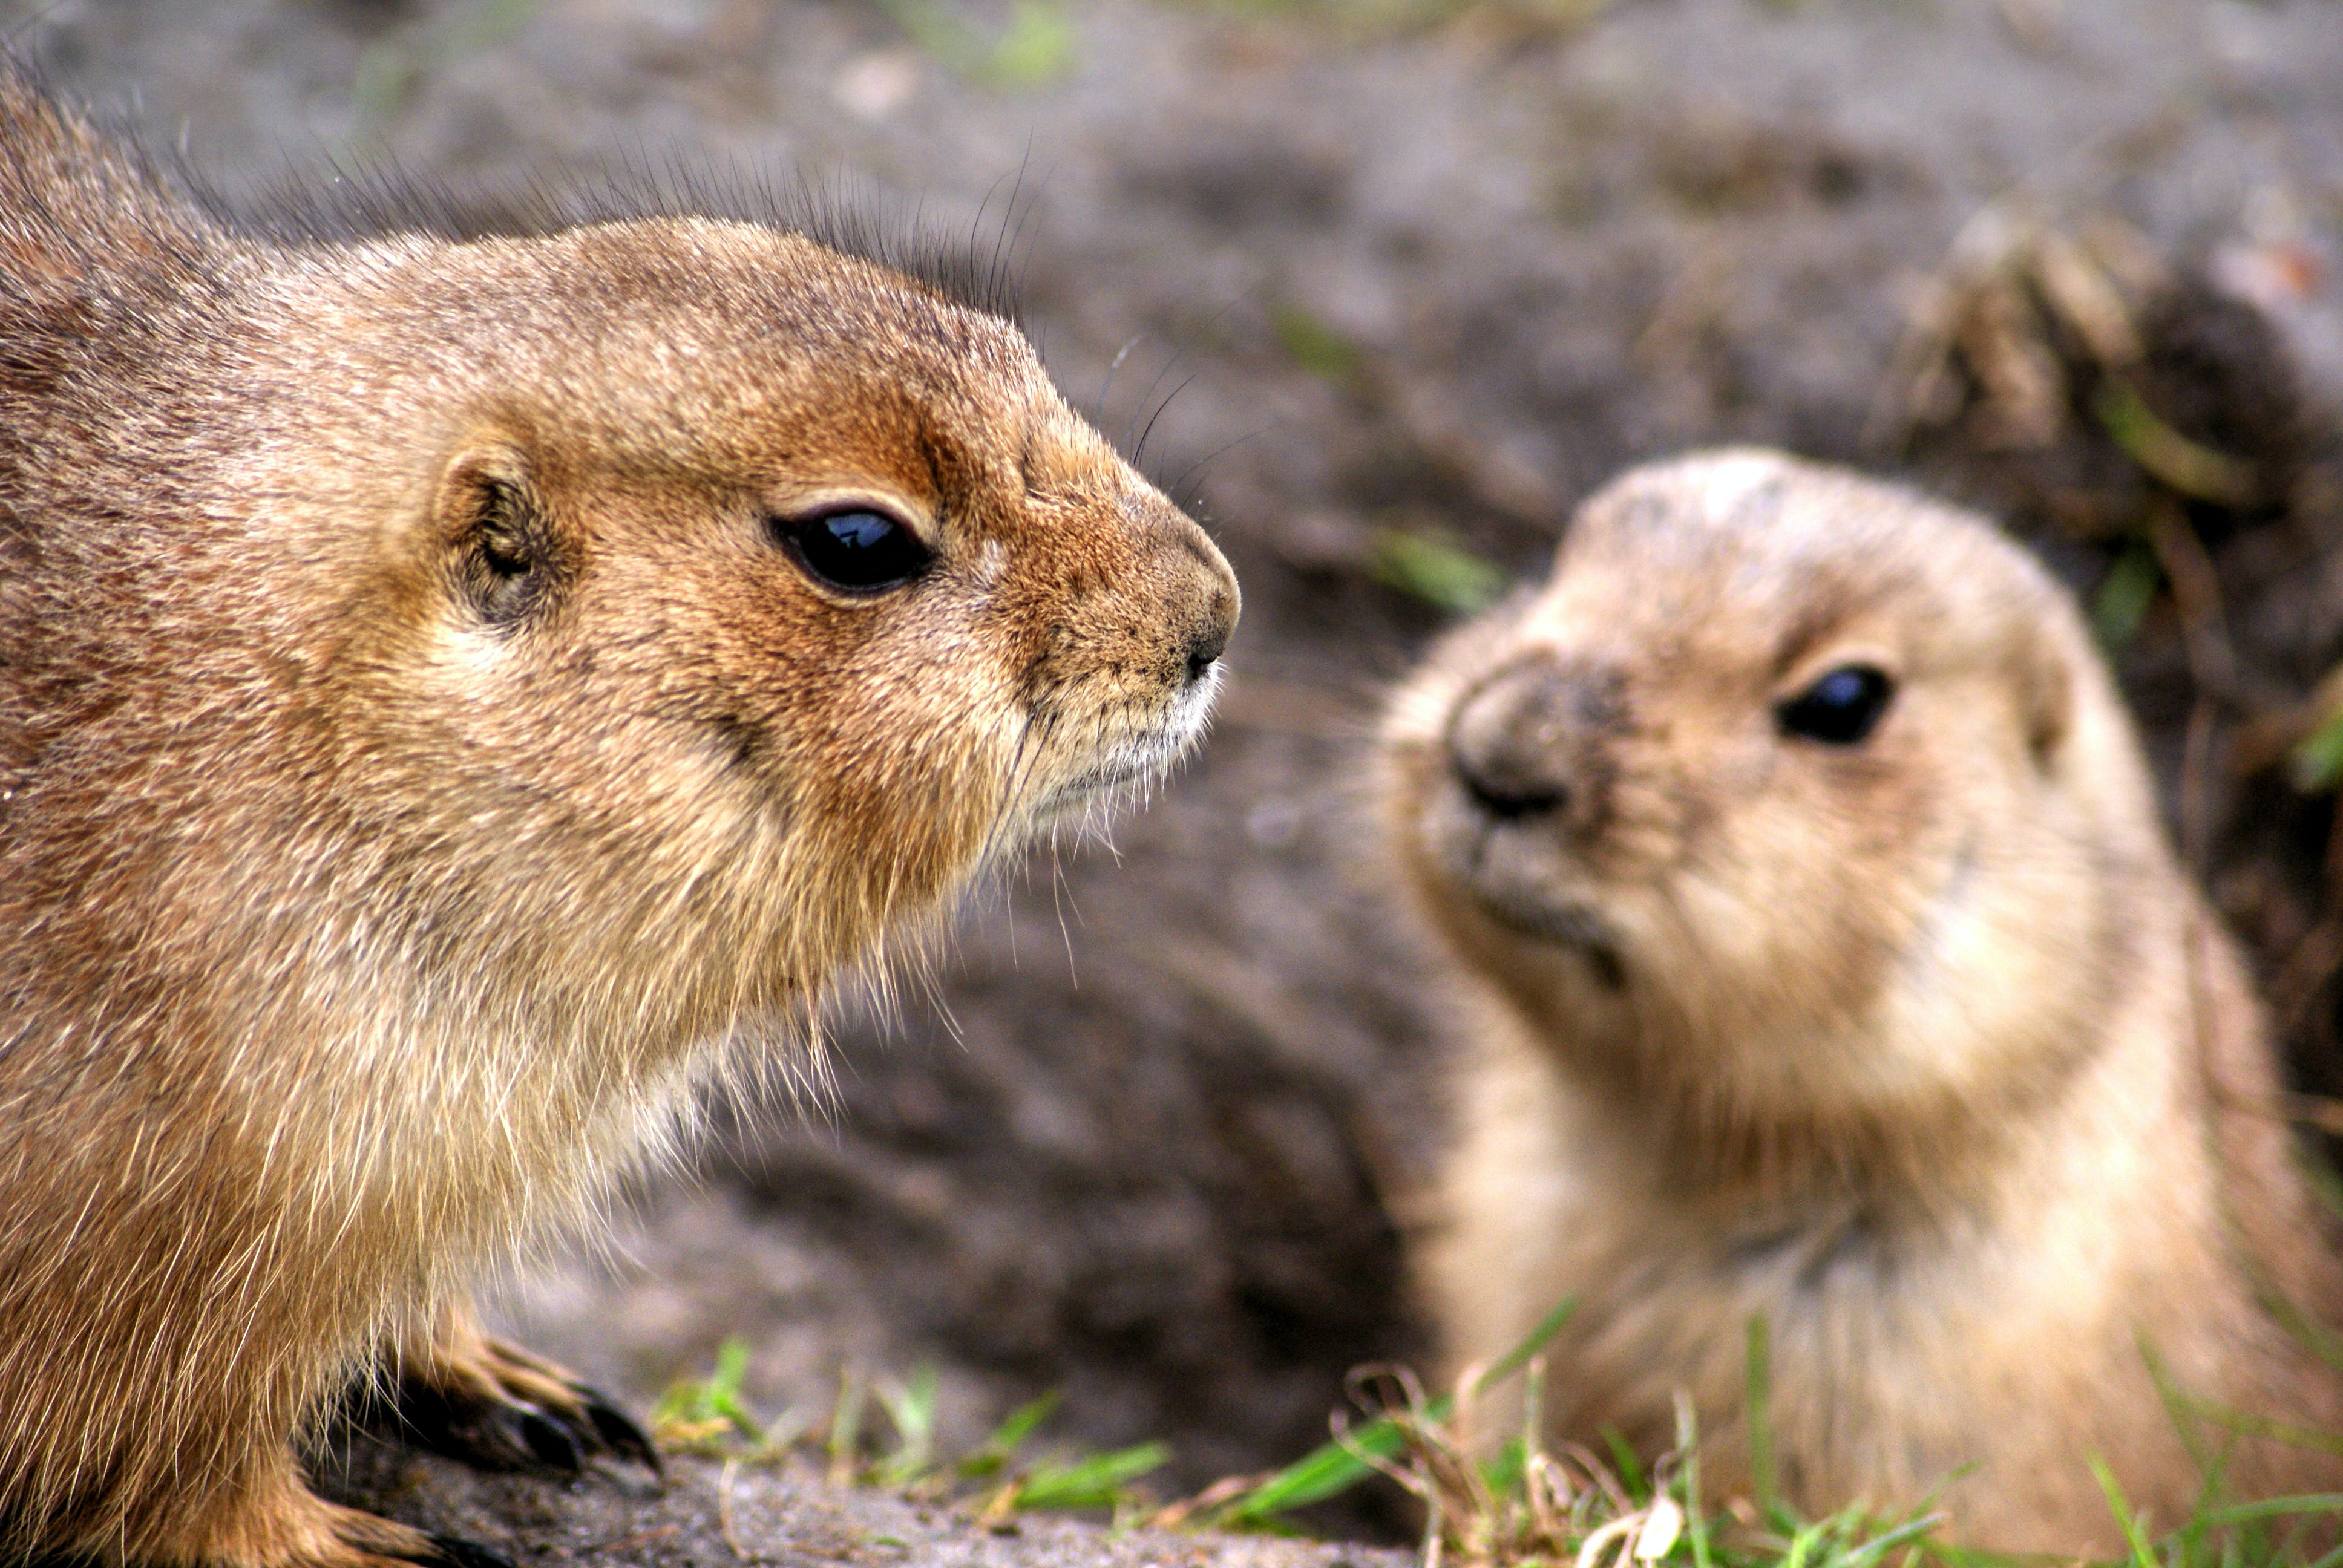 Selective Focus Photograph of Two Rodents